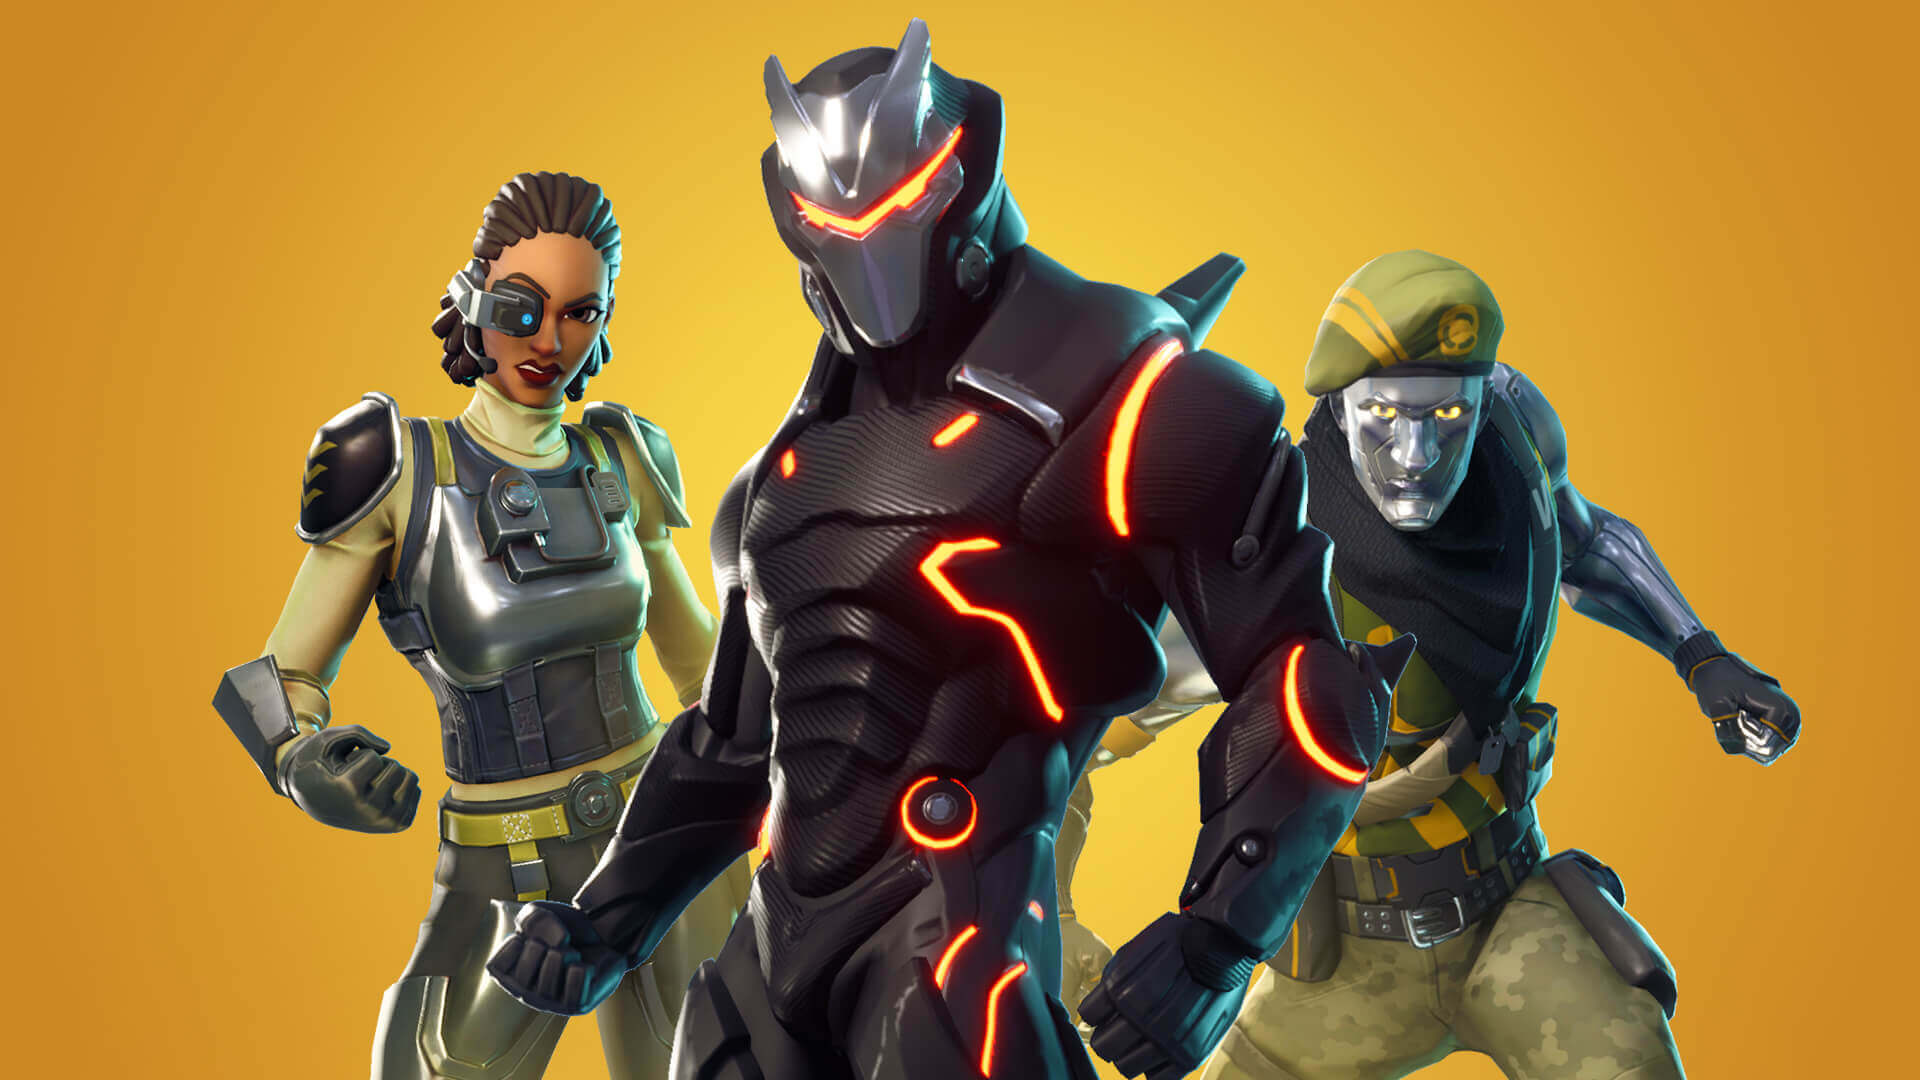 Epic Games puts $100 million into Fortnite prize pools.